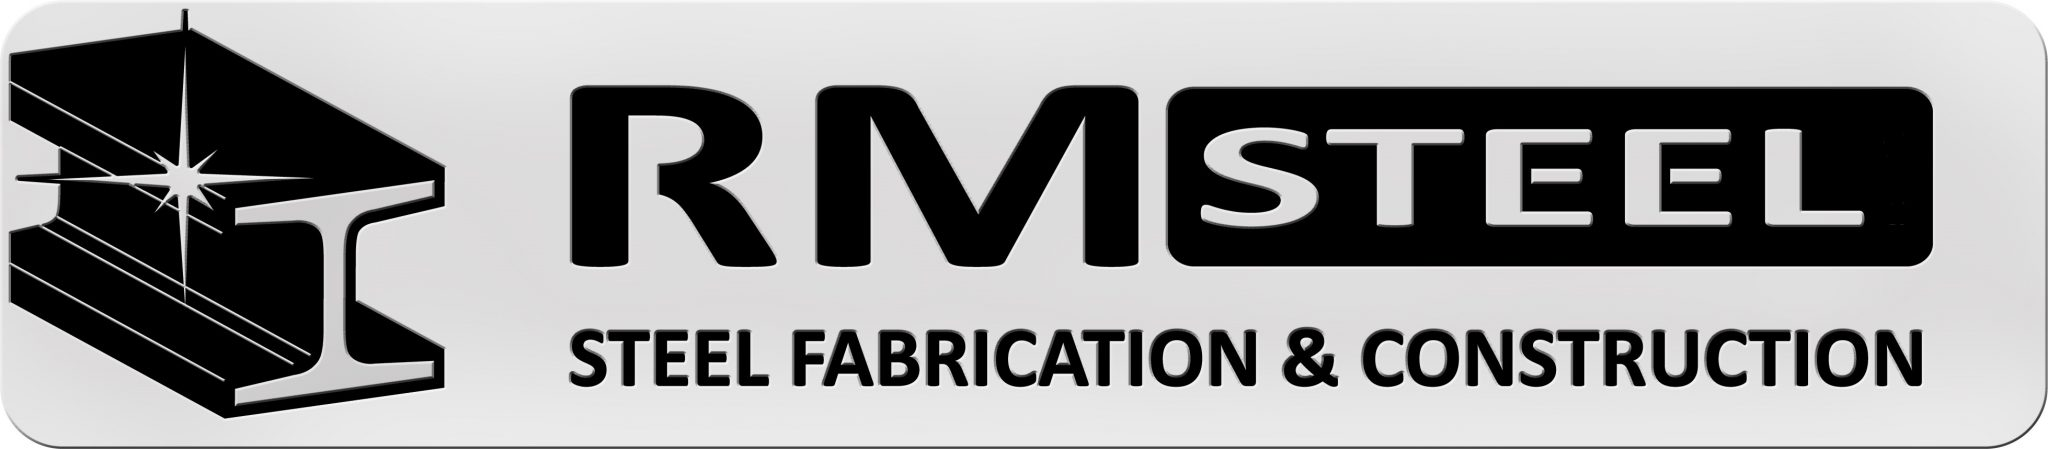 RM Steel Fabrications